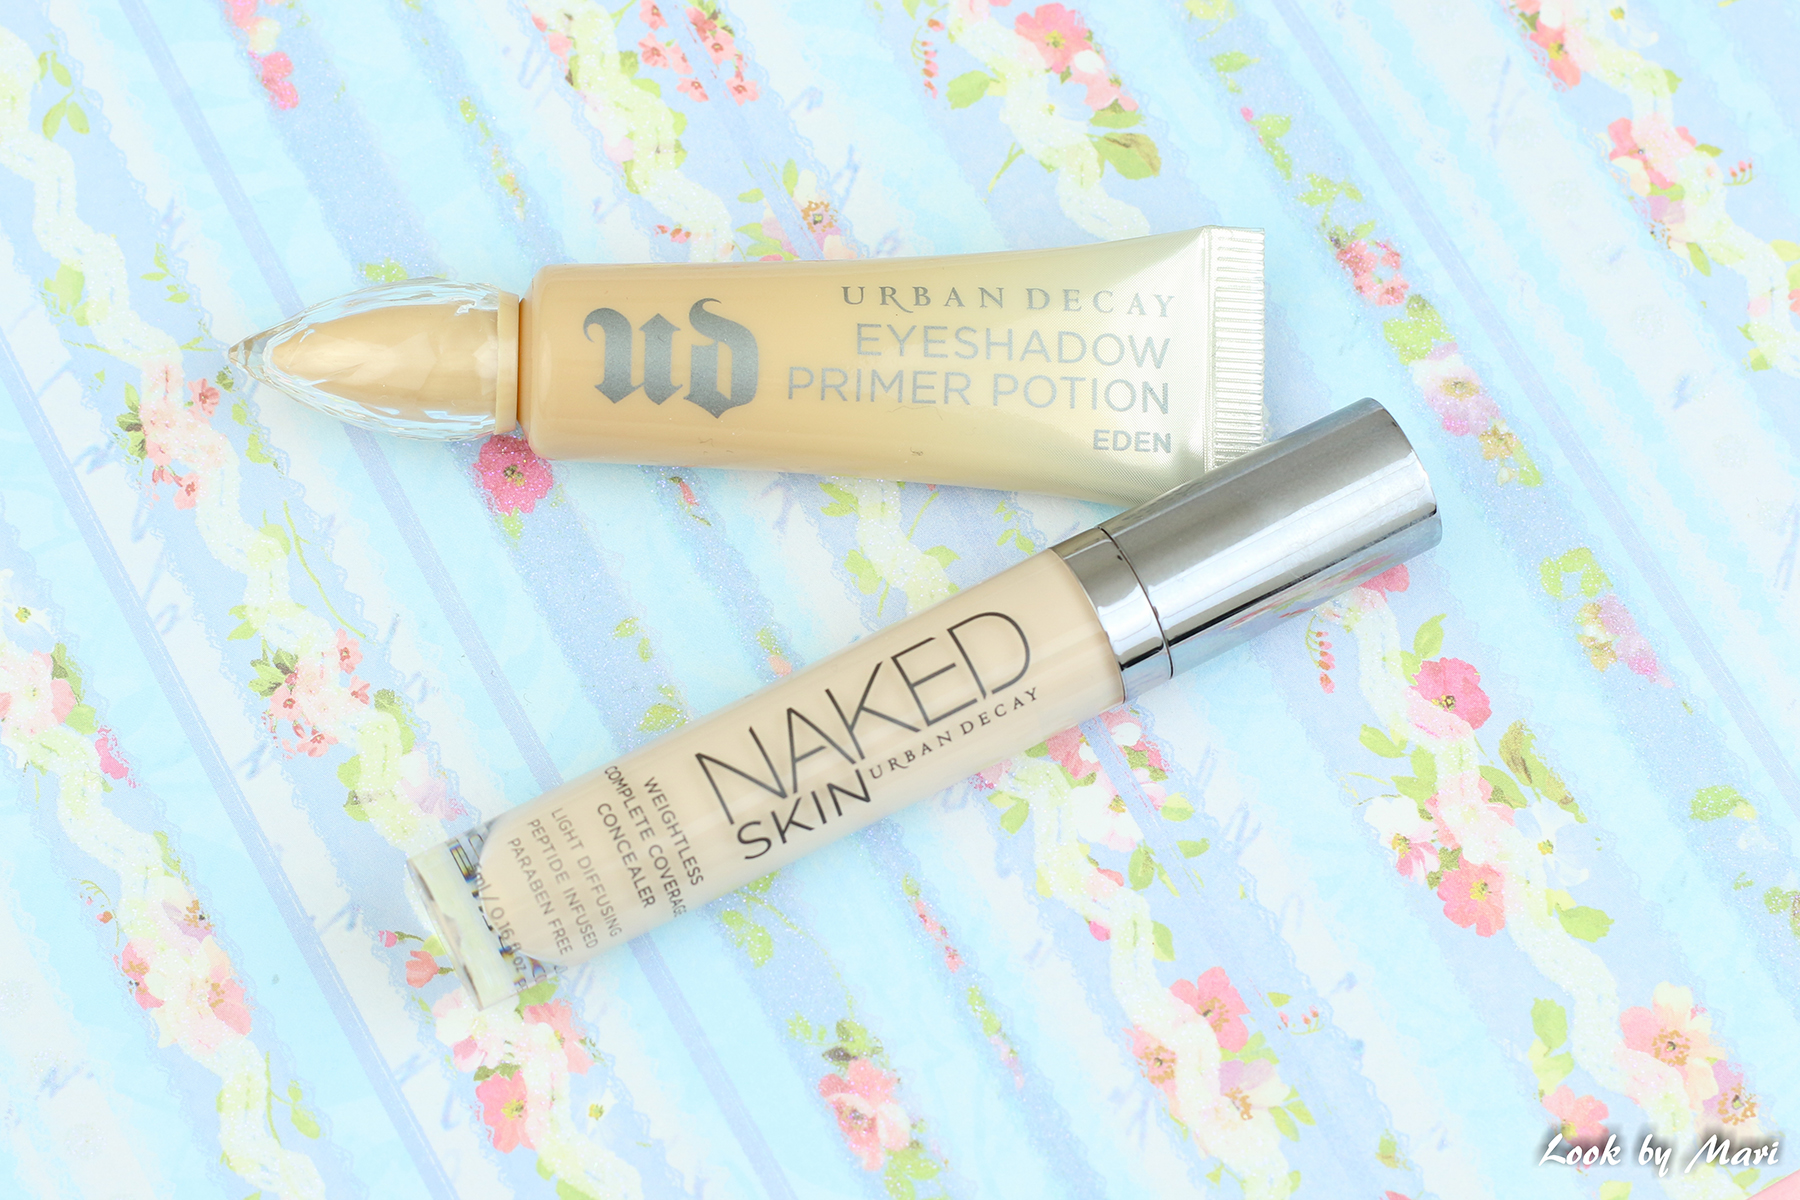 4 Urban decay eyeshadow primer potion eden kokemuksia review naked skin concealer fair neutral